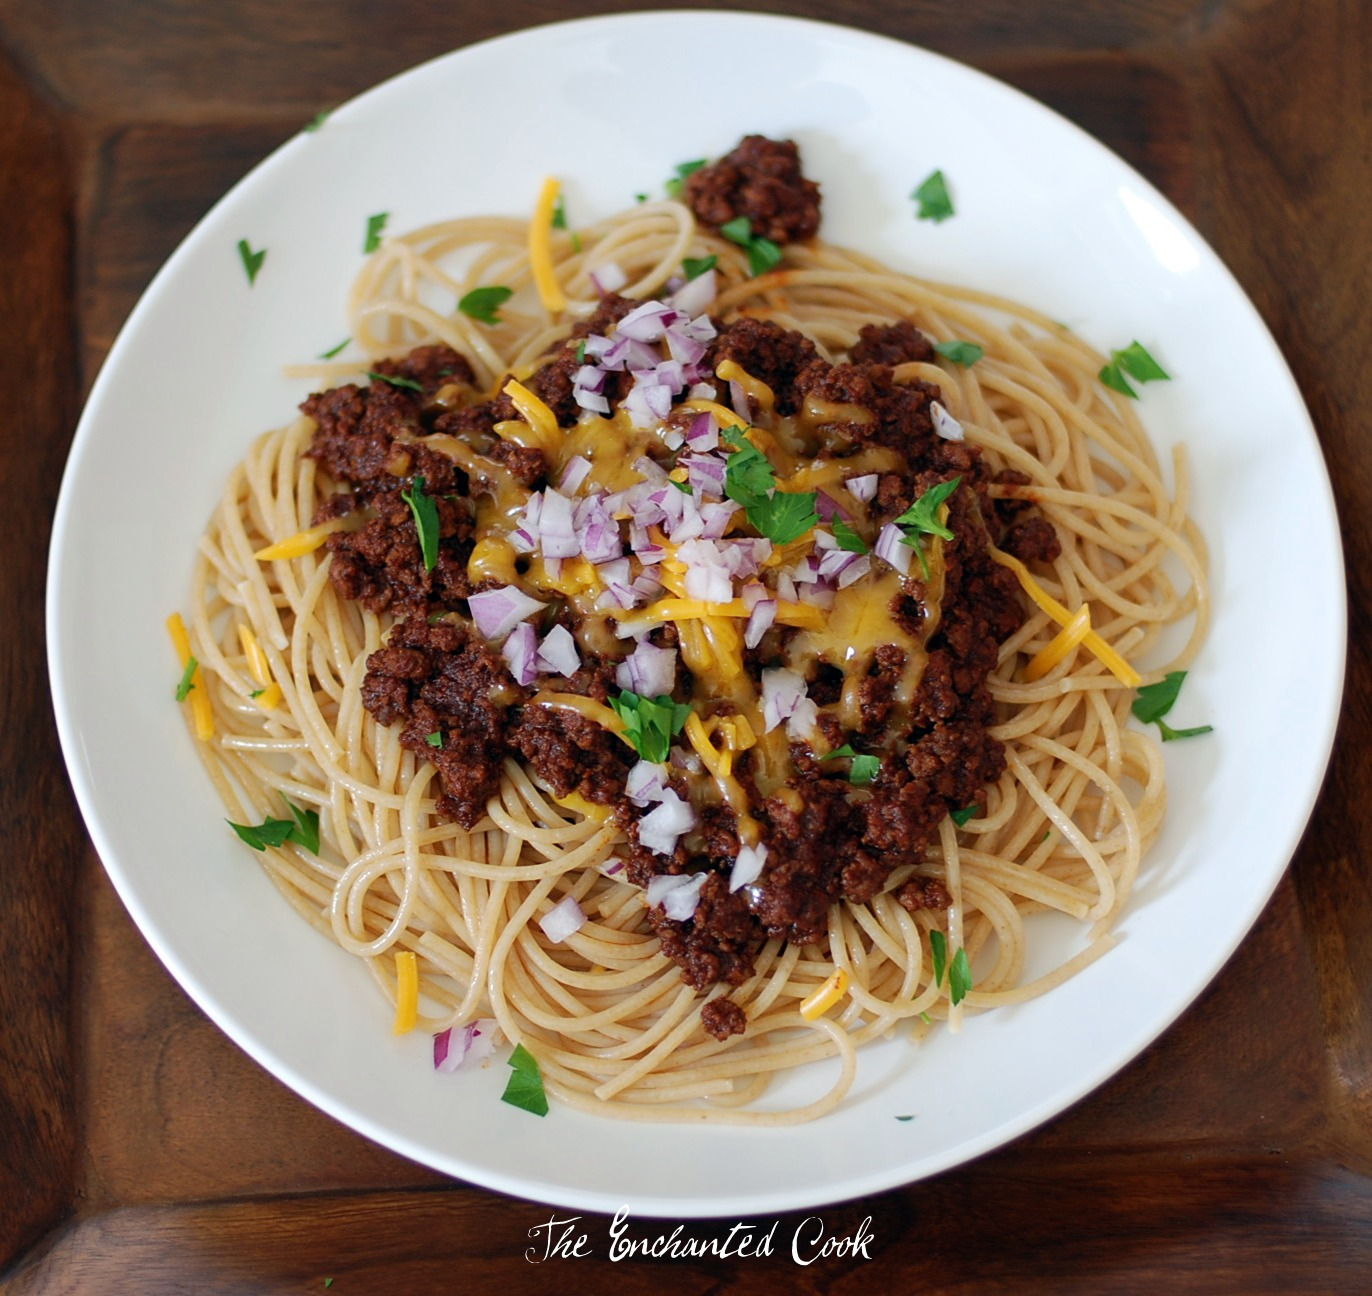 how to cook chili with spaghetti sauce